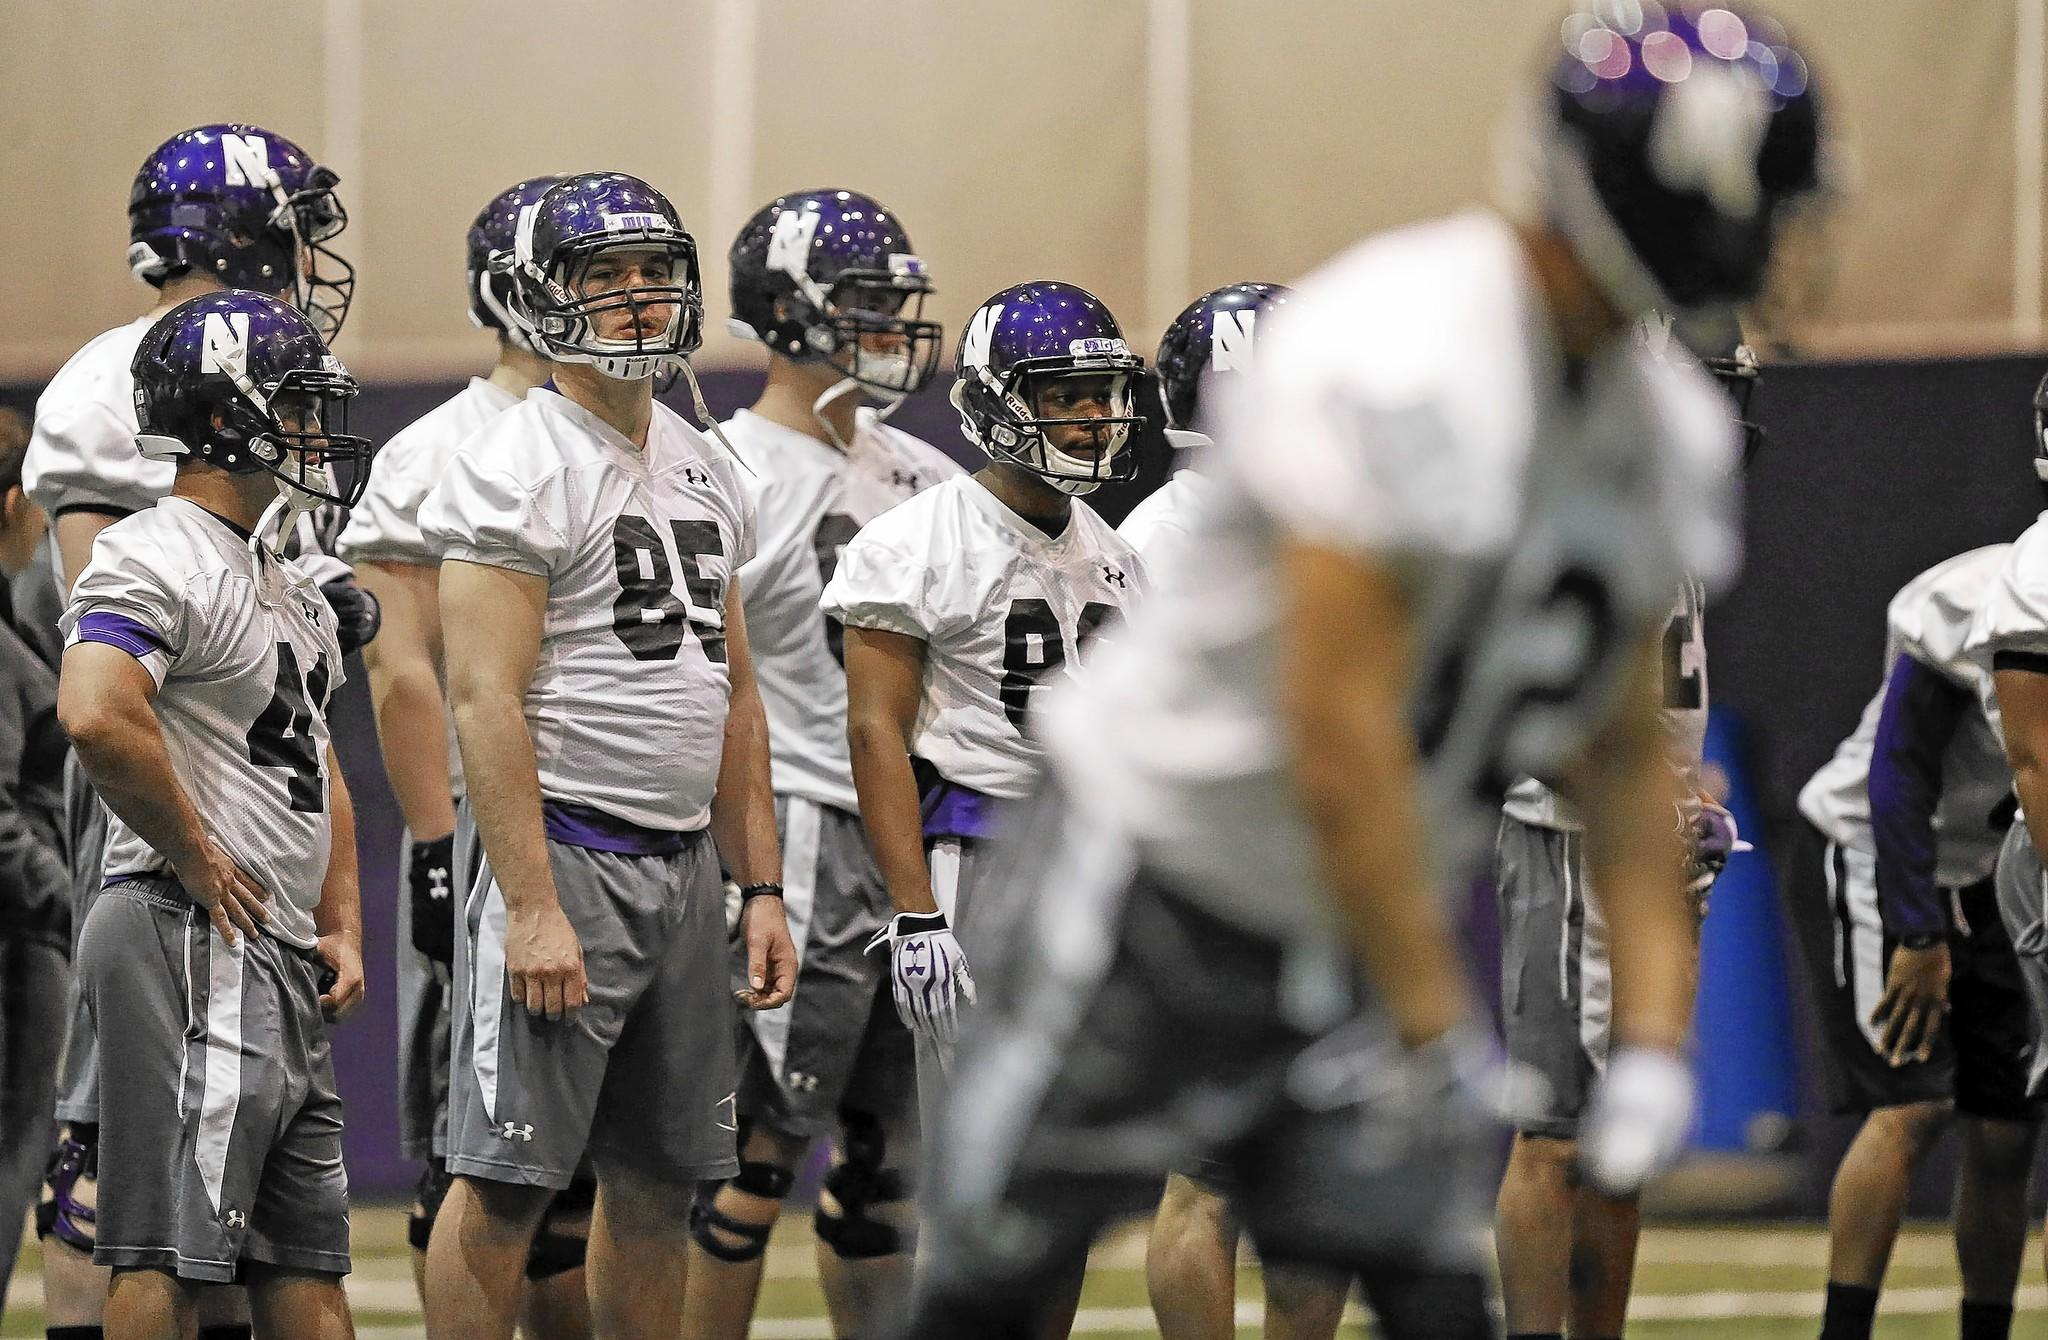 Northwestern University football players run drills Tuesday during spring practice. Last week, the National Labor Relations Board's regional director ruled that NU's football players on athletic scholarships are university employees and, as such, their petition for a union election can move forward.